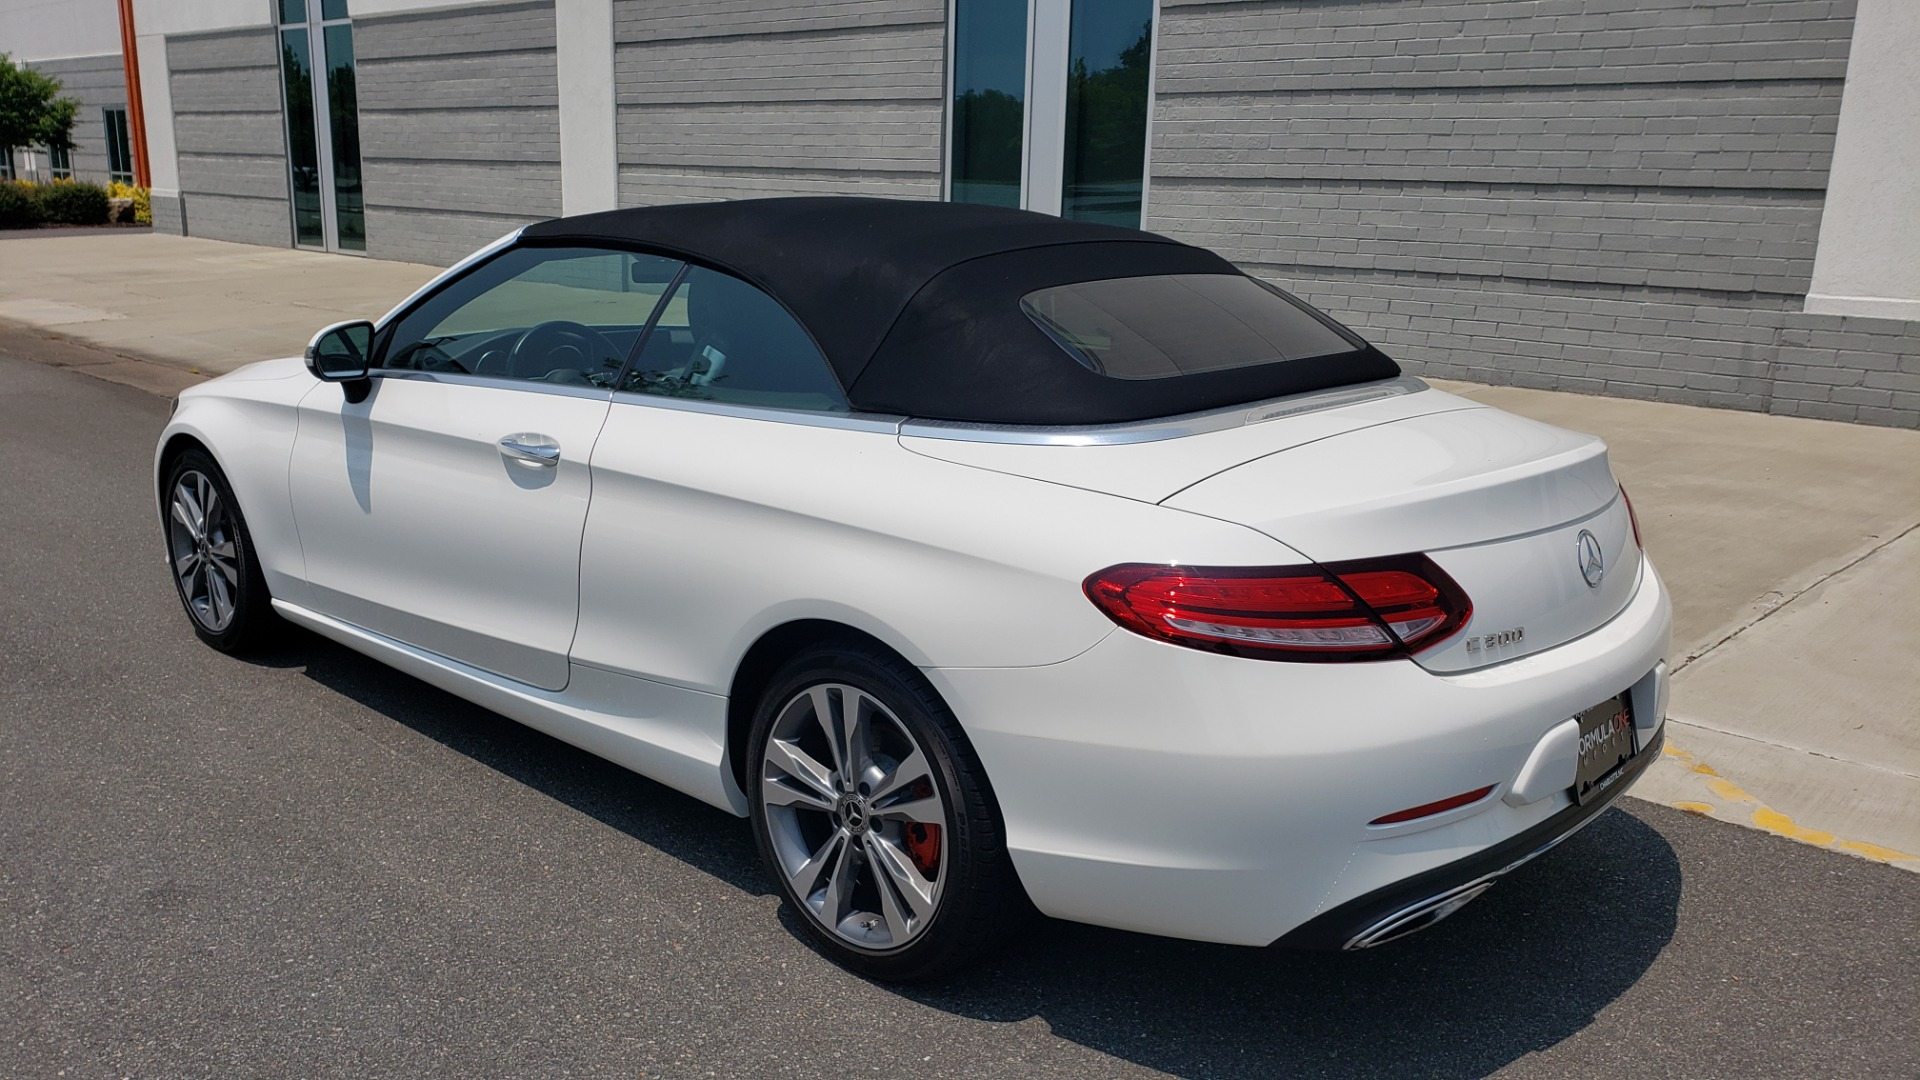 Used 2019 Mercedes-Benz C-CLASS C 300 CABRIOLET 2.0L / AUTO / NAV / HD RADIO / REARVIEW for sale $46,995 at Formula Imports in Charlotte NC 28227 8